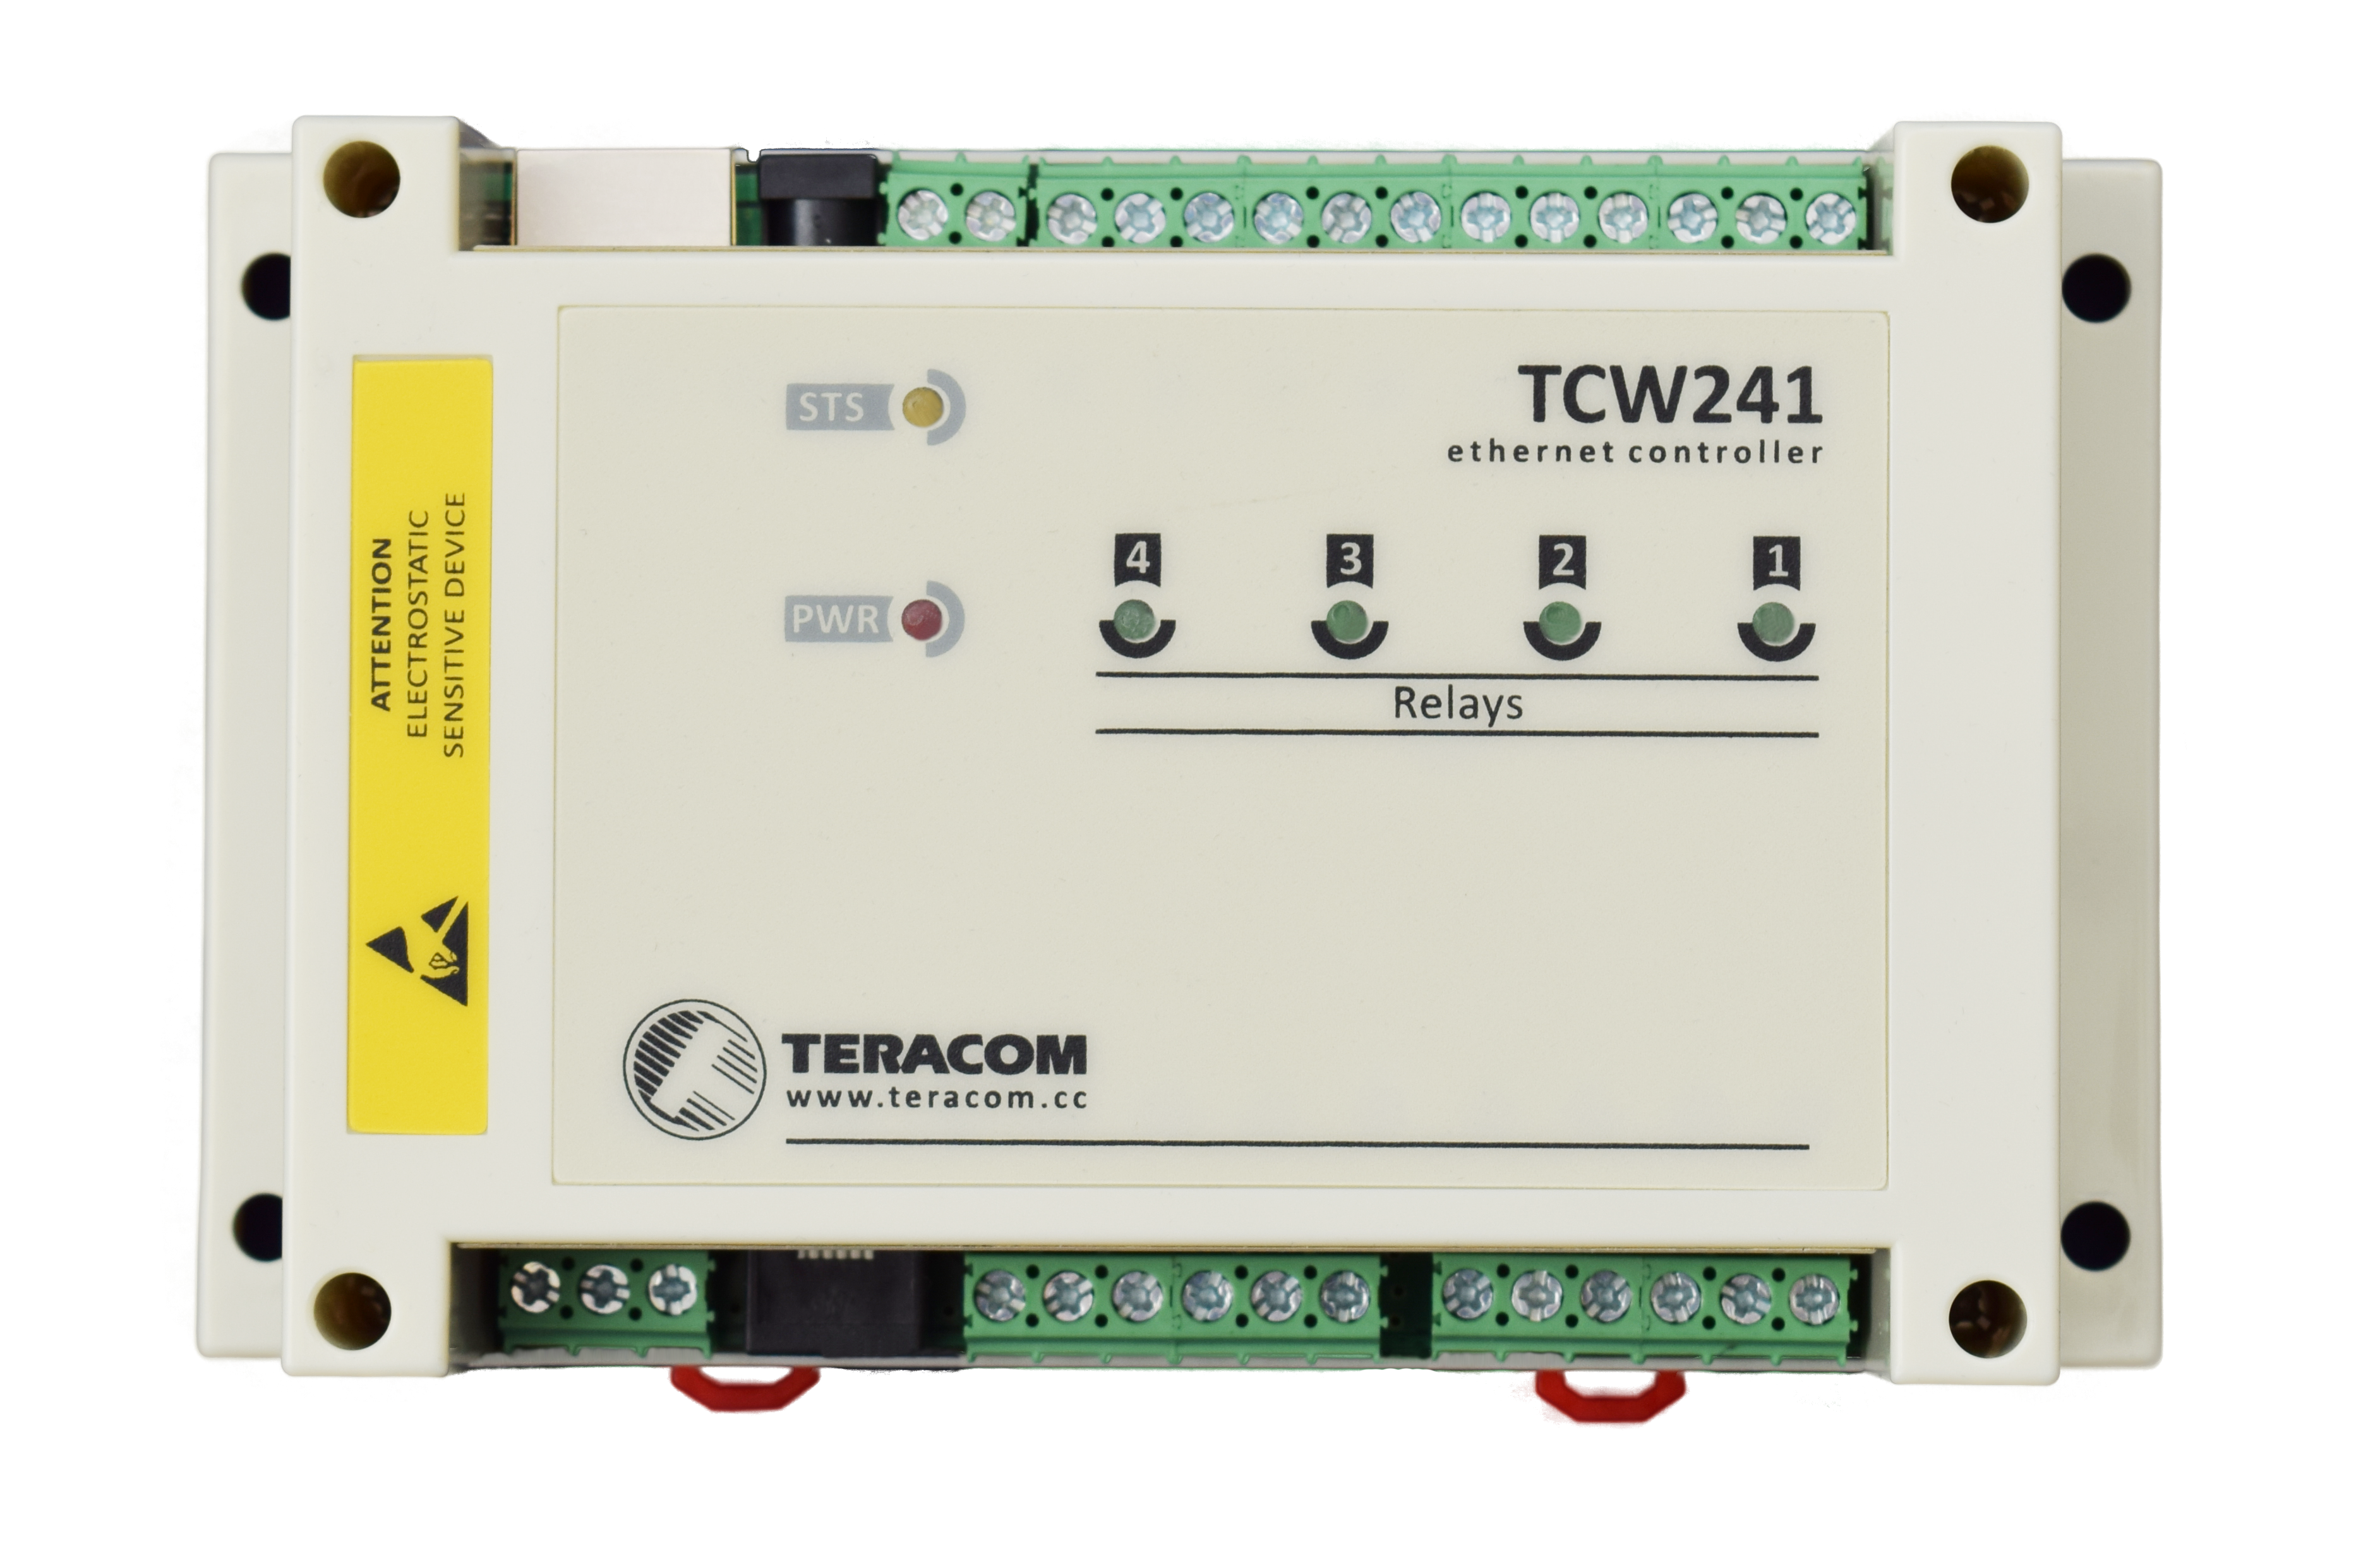 TCW241 is our new Ethernet I/O controller. #B5A216